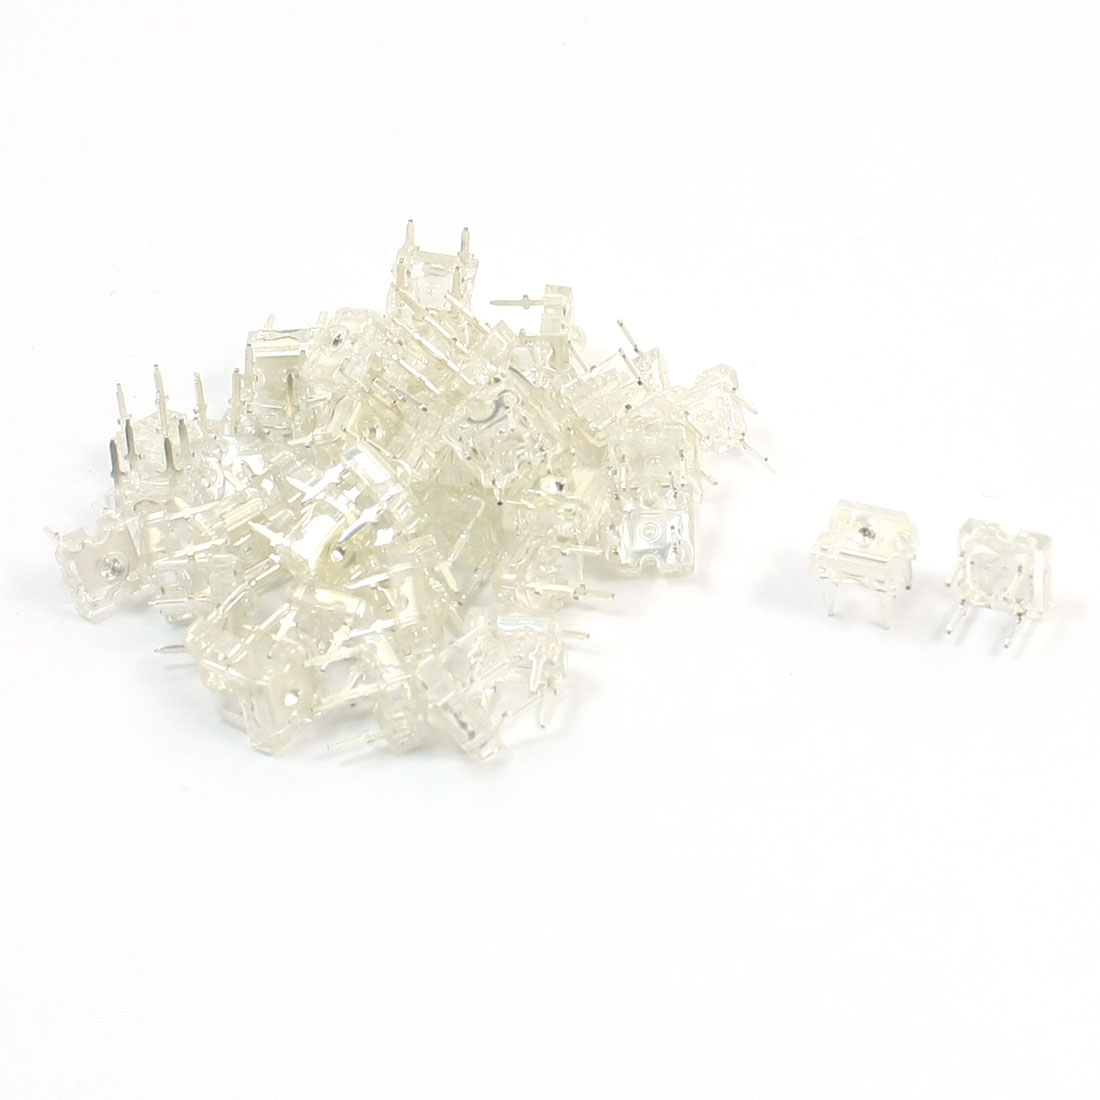 50 Pcs DC3.0-3.2V 5mm Pitch 4 Pin 3mm Dia Top Round Blue Light Piranha LED Emitting Diodes